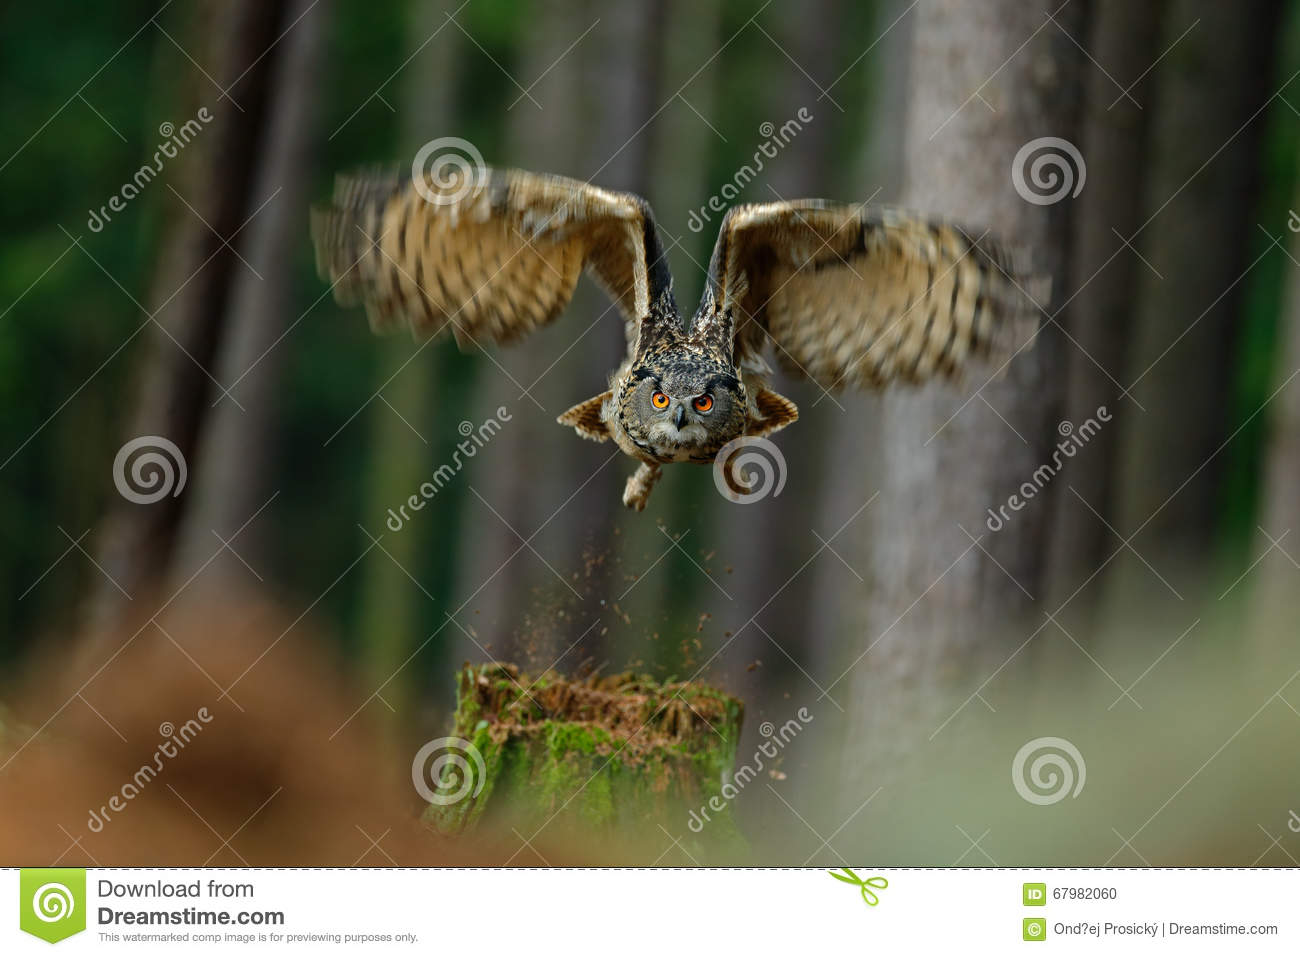 Flying bird Eurasian Eagle Owl with open wings in forest habitat with trees